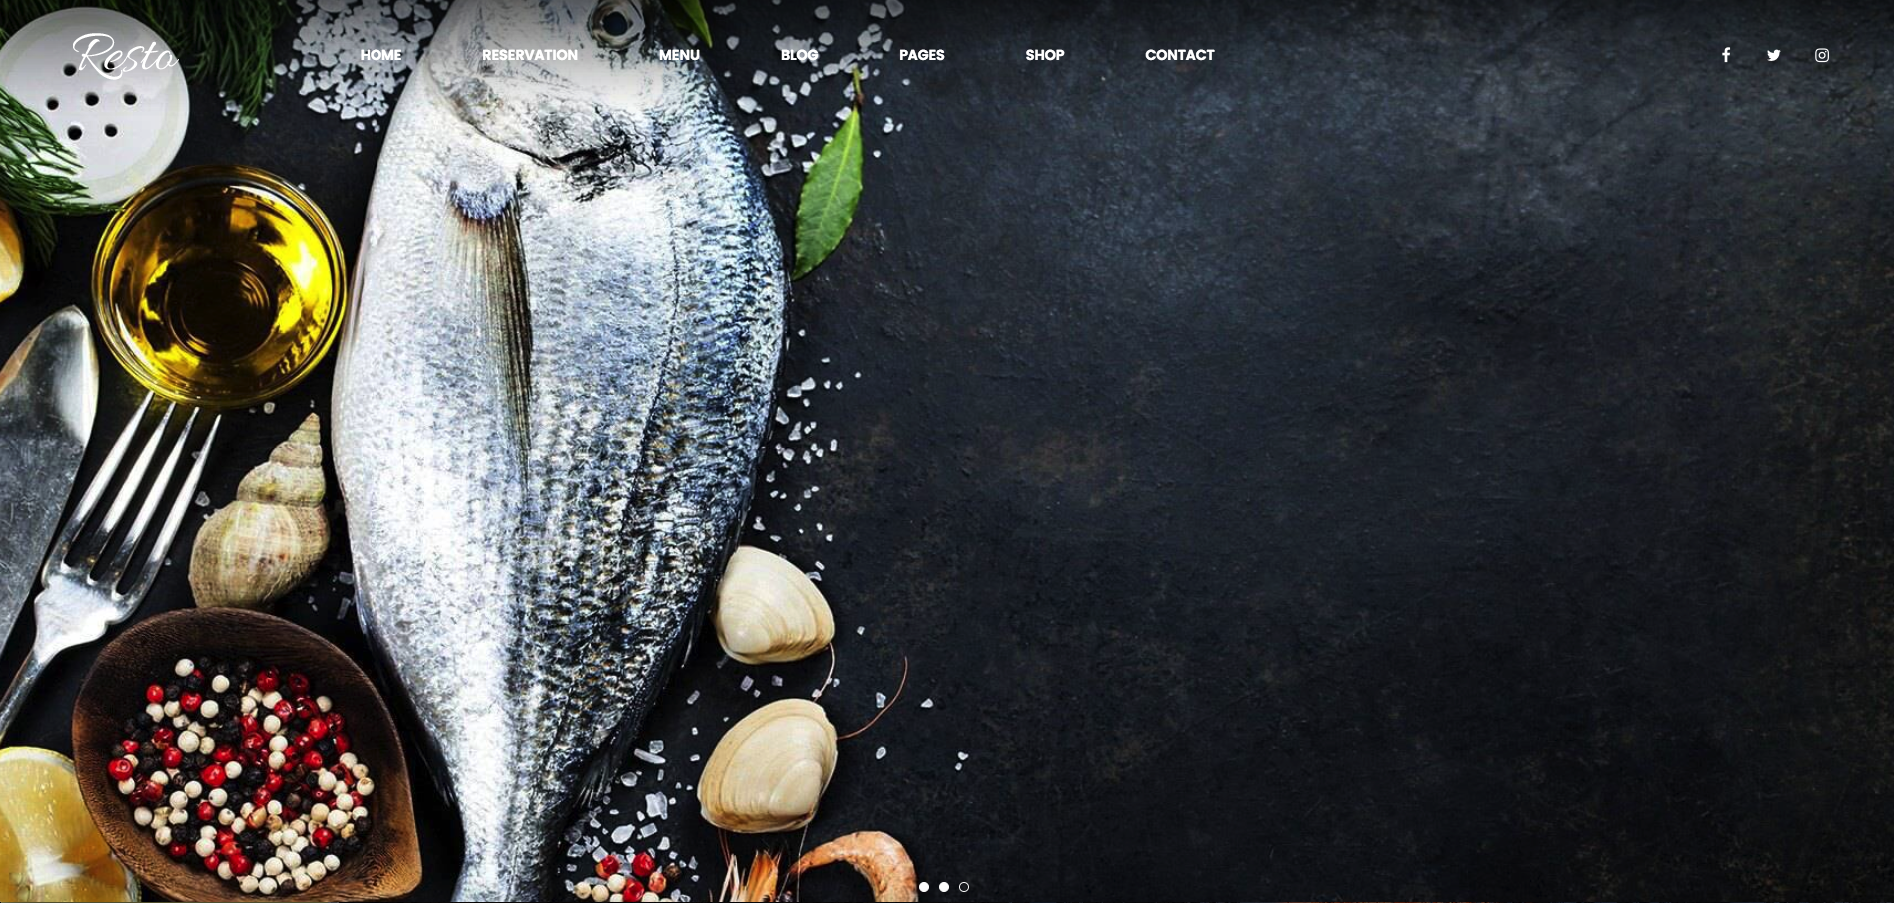 Resto- Multipurpose Restaurant & Cafe WordPress Theme